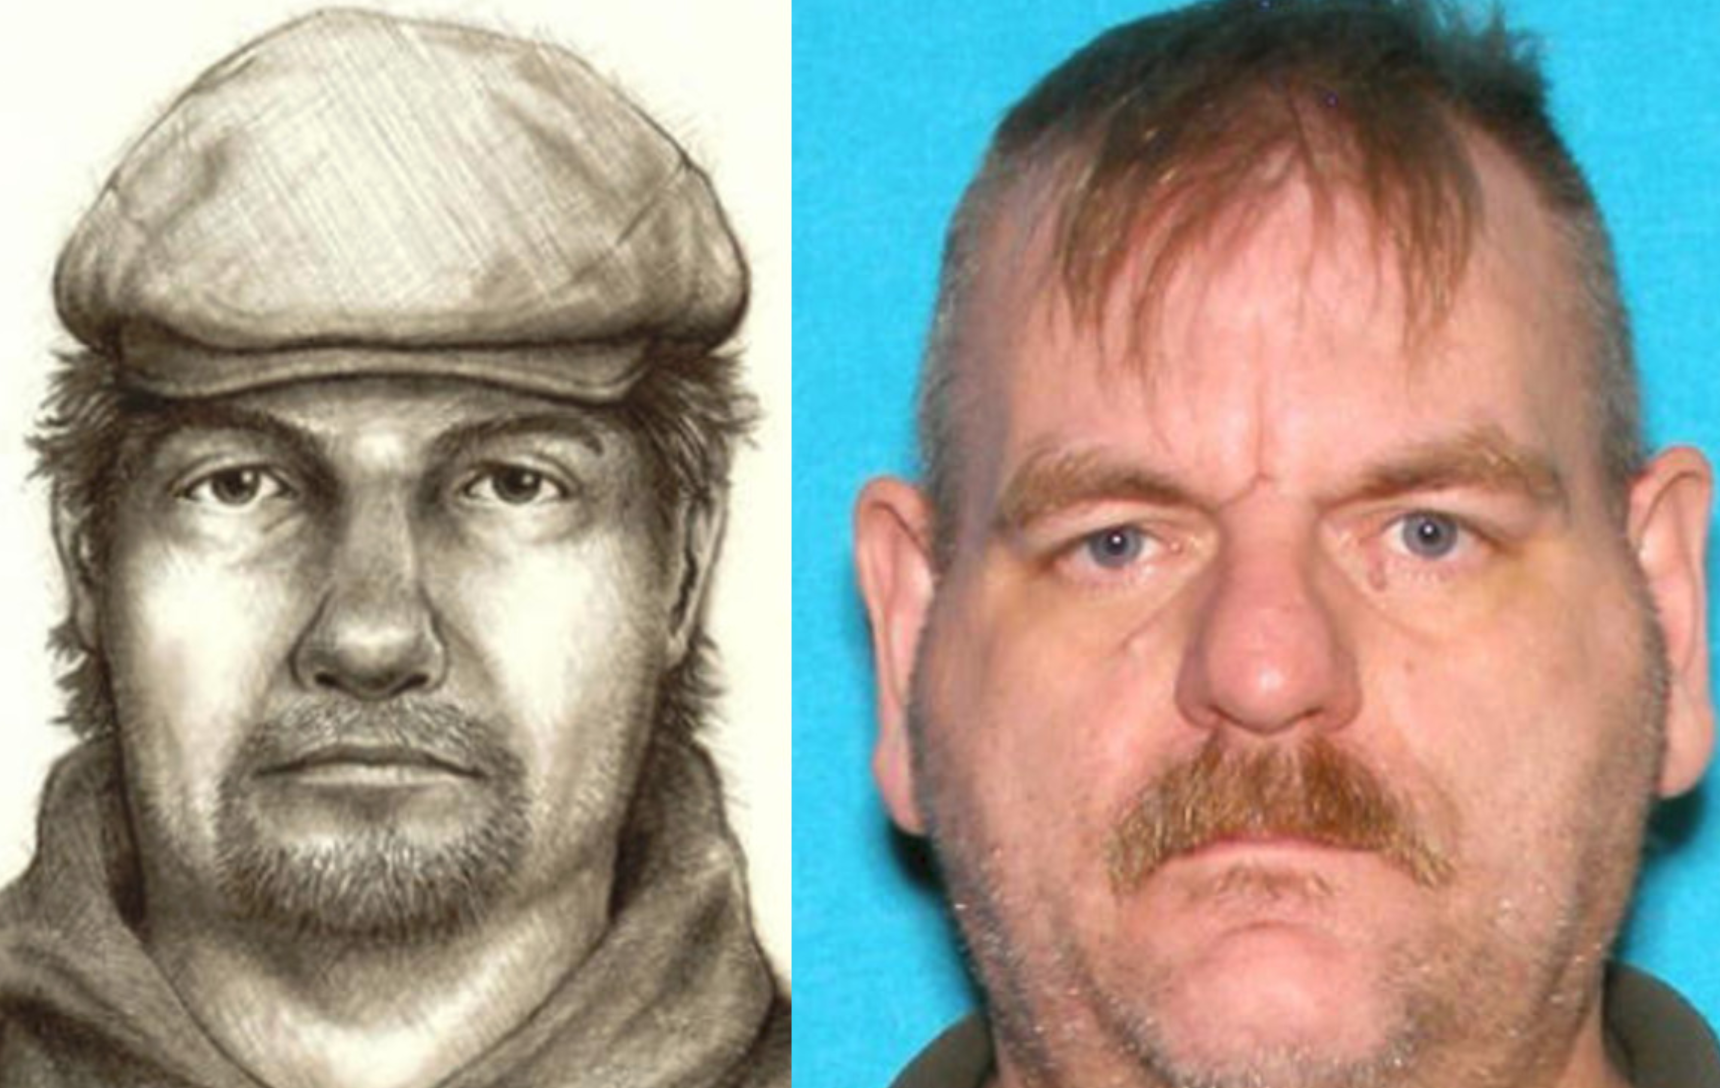 Charles Eldridge's Mugshot Resembles Sketch Of Delphi Murder